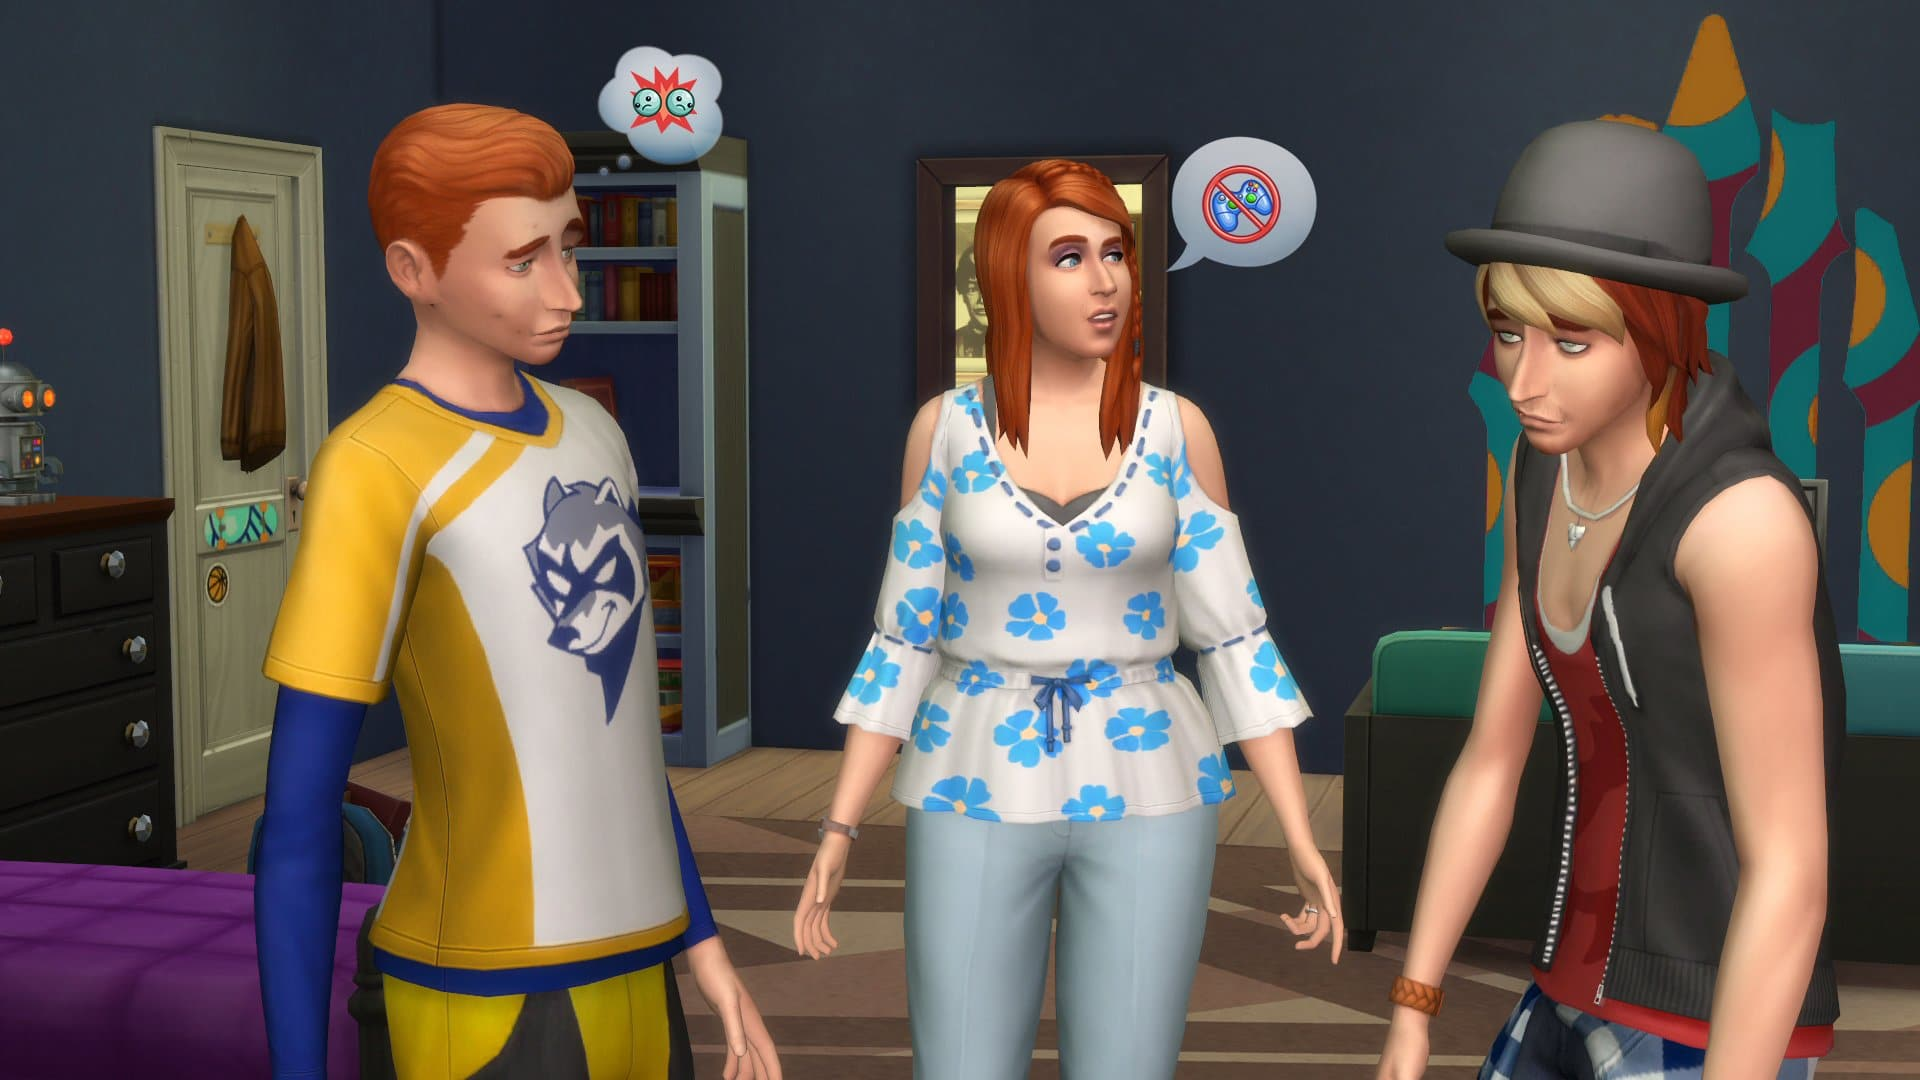 Les Sims 4 Etre Parents [30 Mai 2017] TS4_0208_GP05_BLOG_SCREEN_02_001